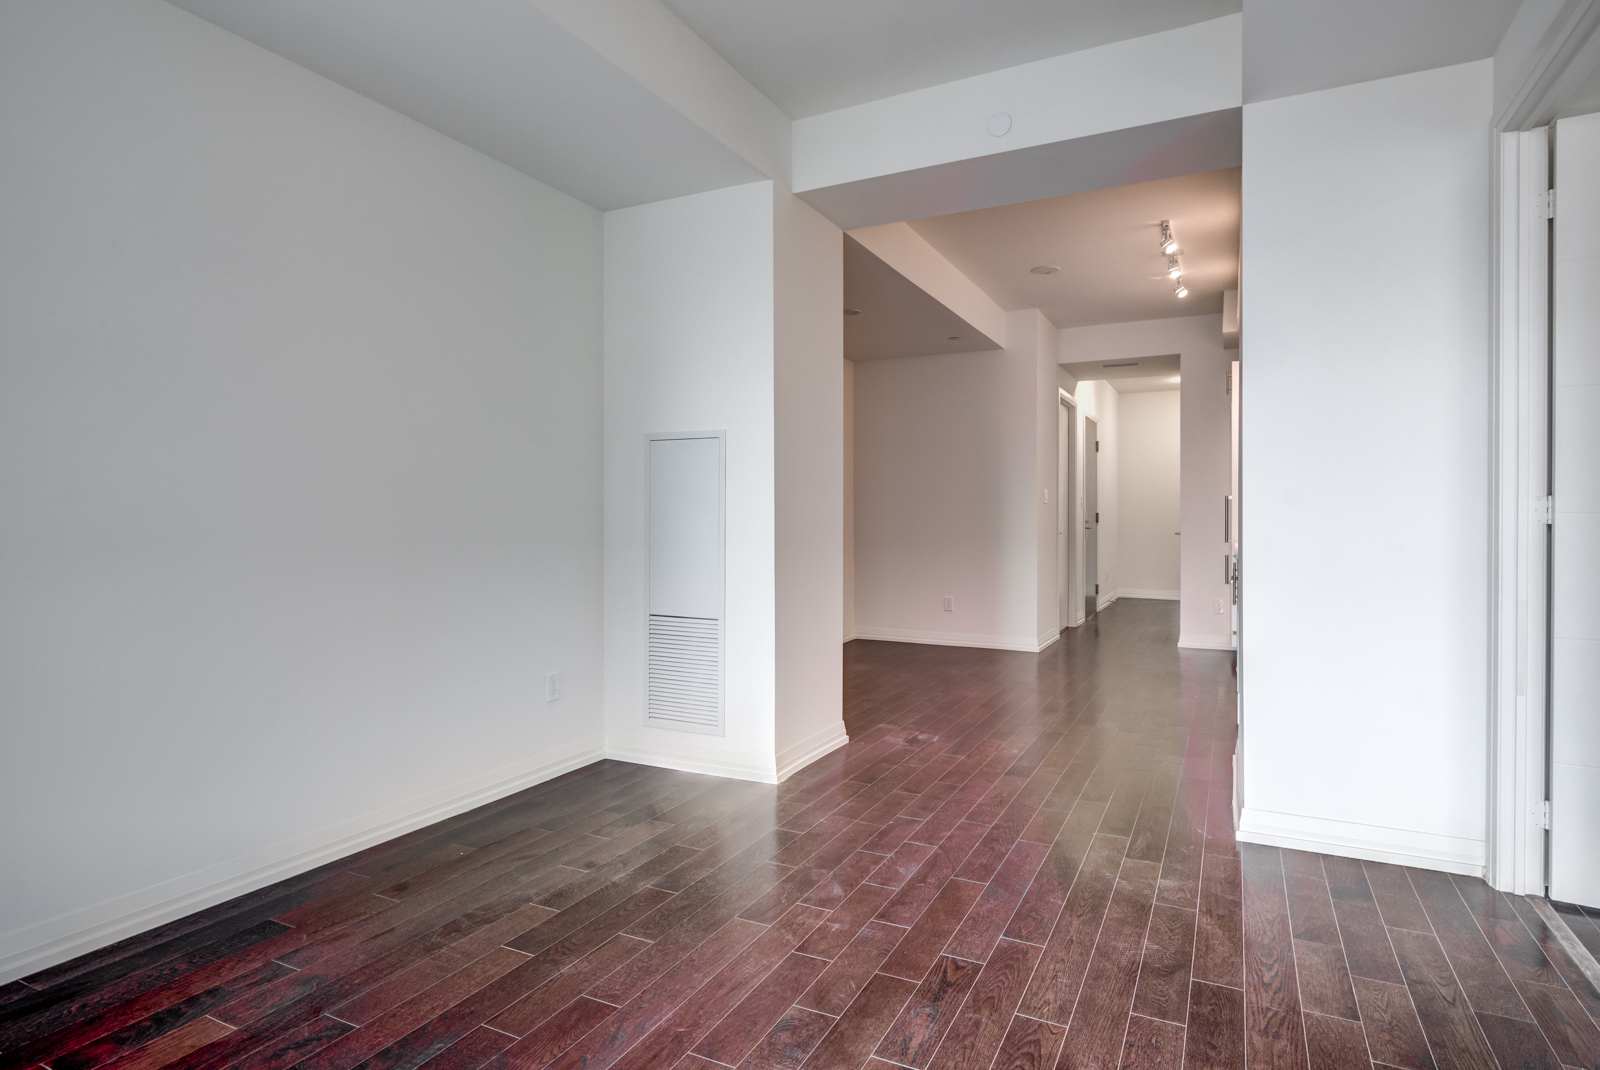 Another image of 460 Adelaide Unit 620 and its rooms.